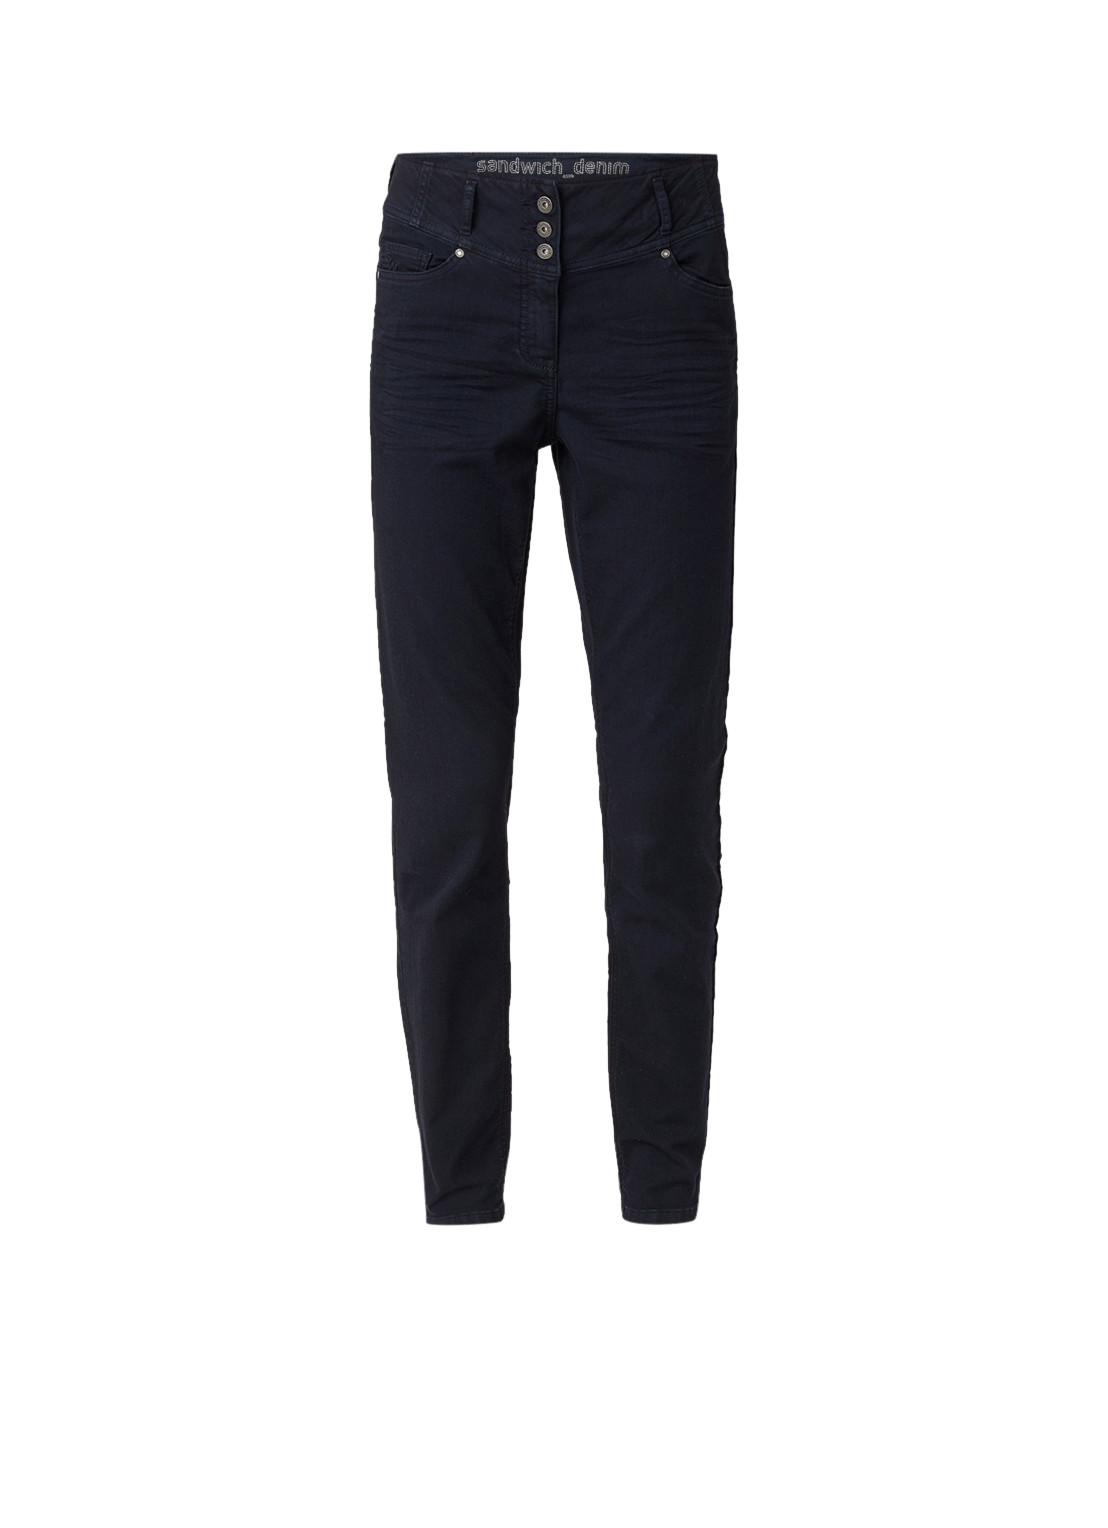 Sandwich High rise slim fit jeans met donkere wassing